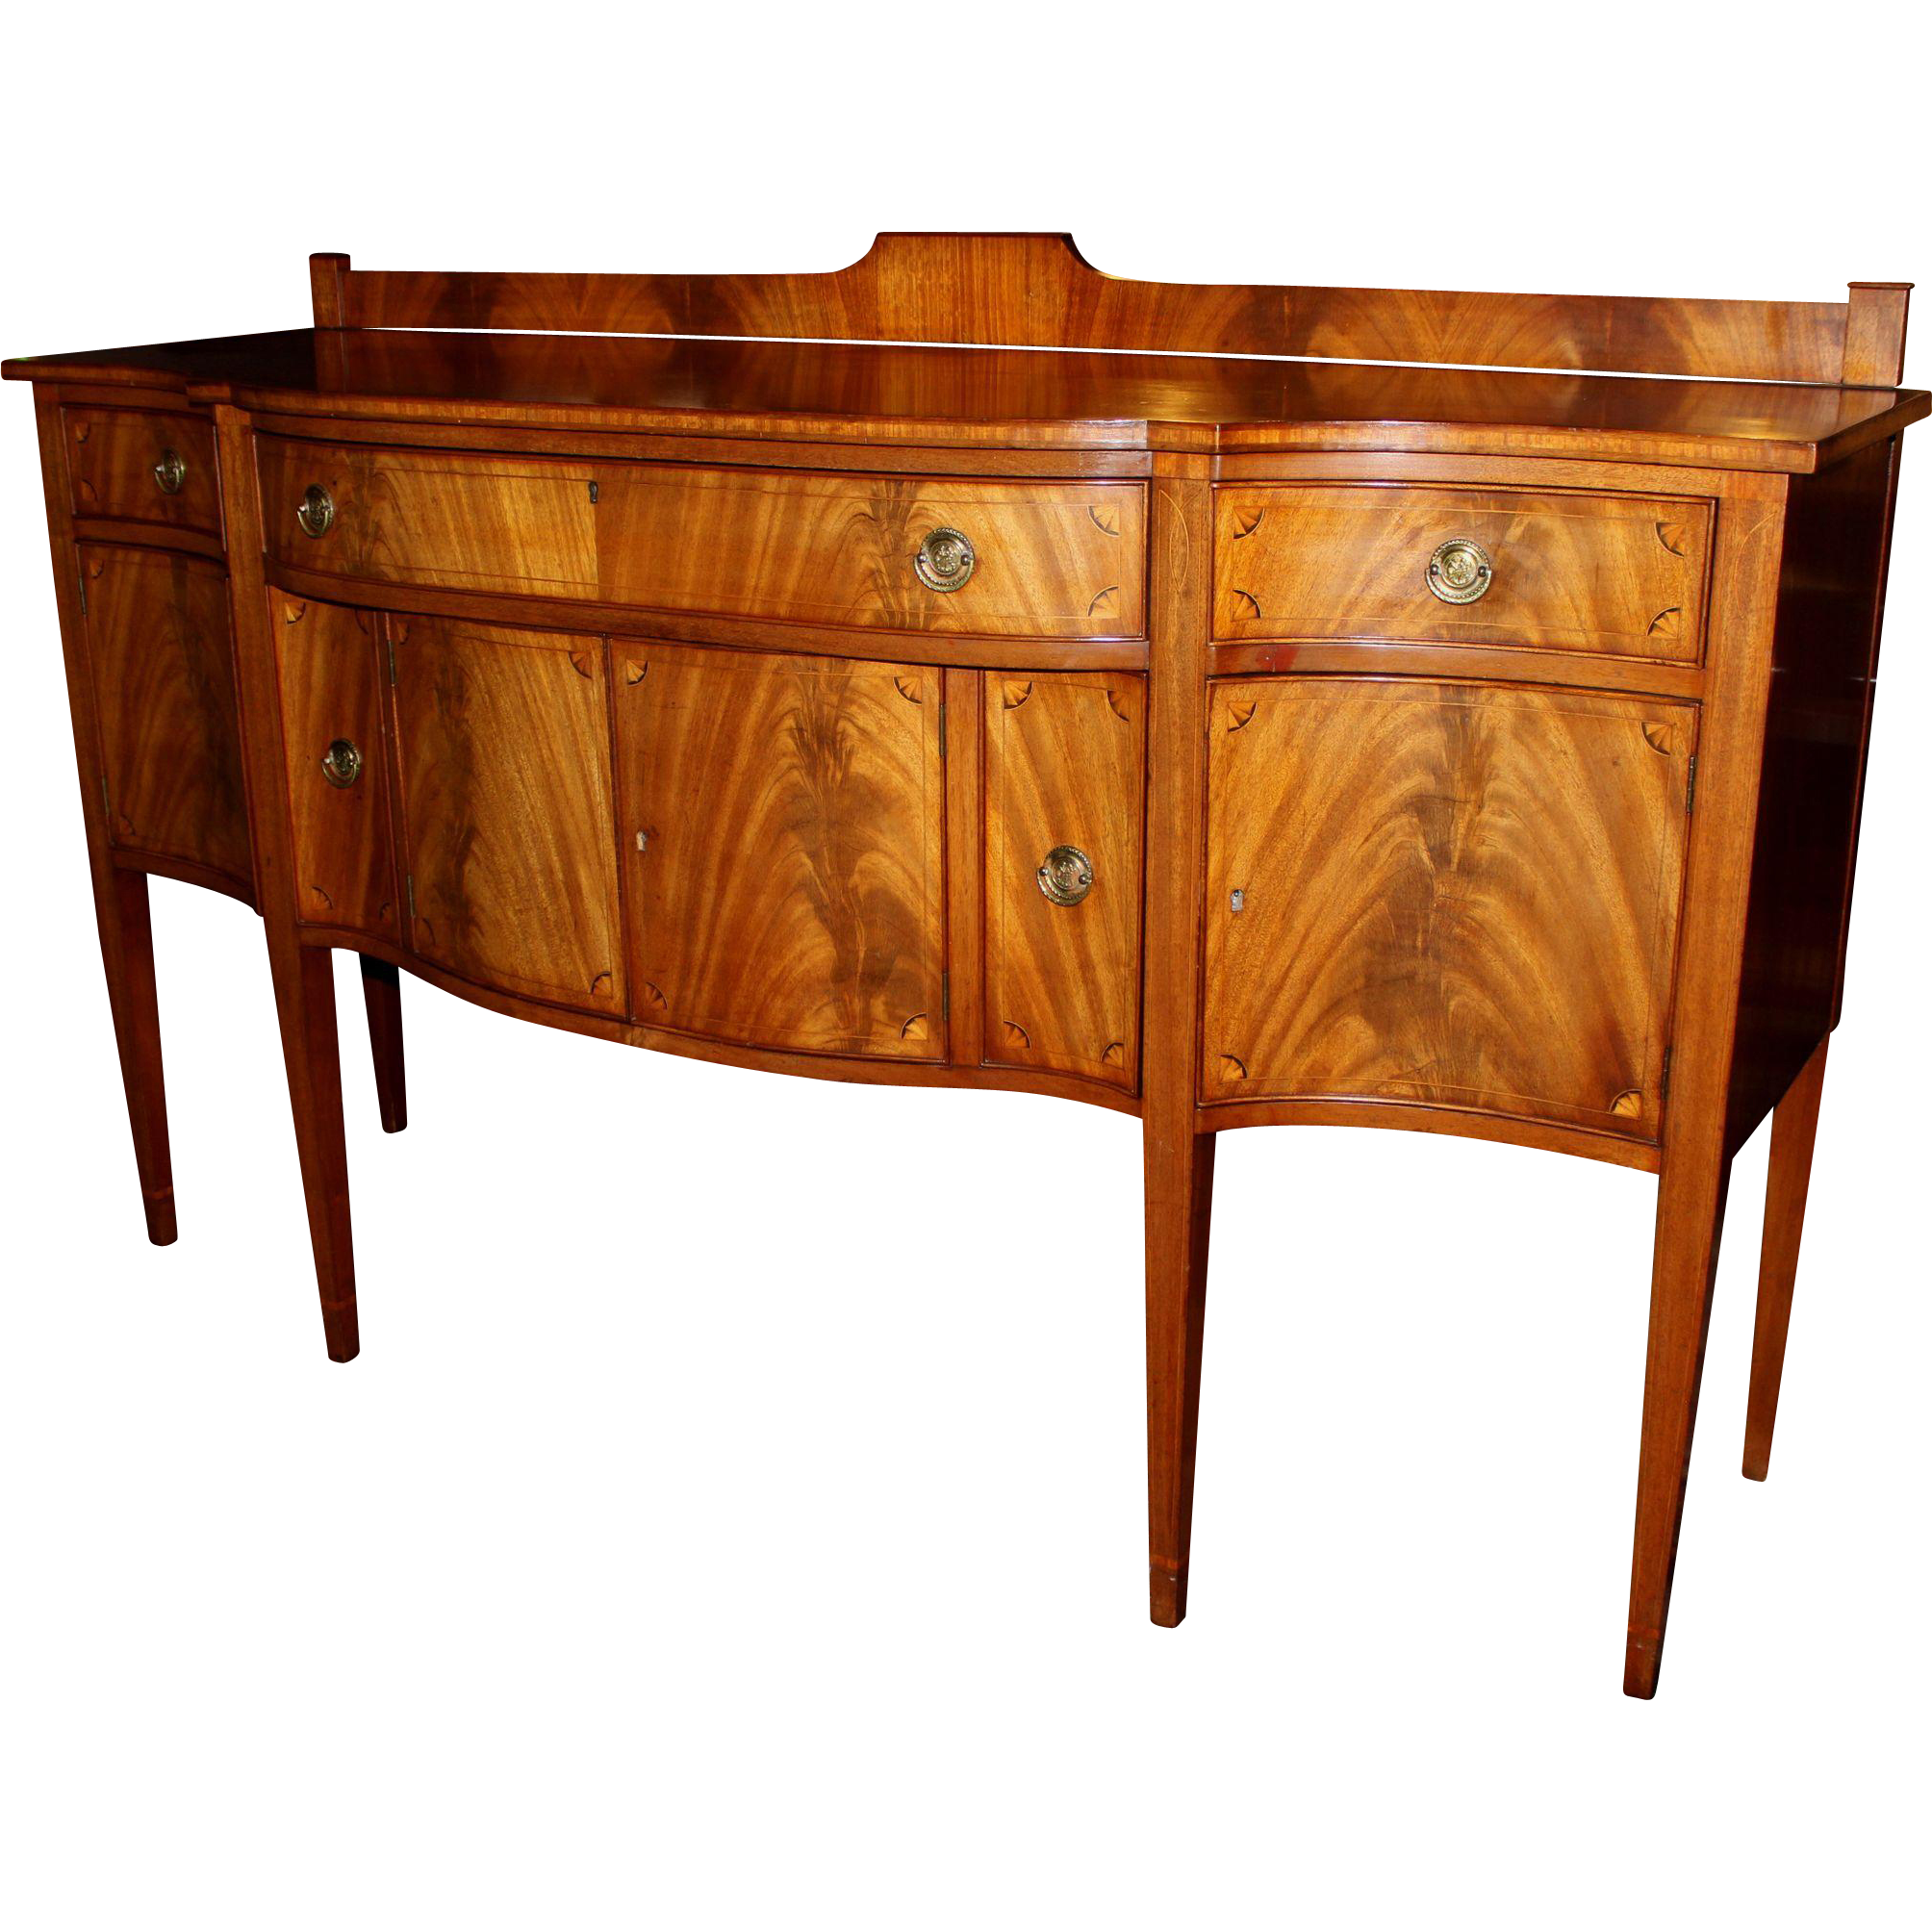 Hepplewhite Style Paine Furniture Sideboard with Crotched Mahogany Veneer